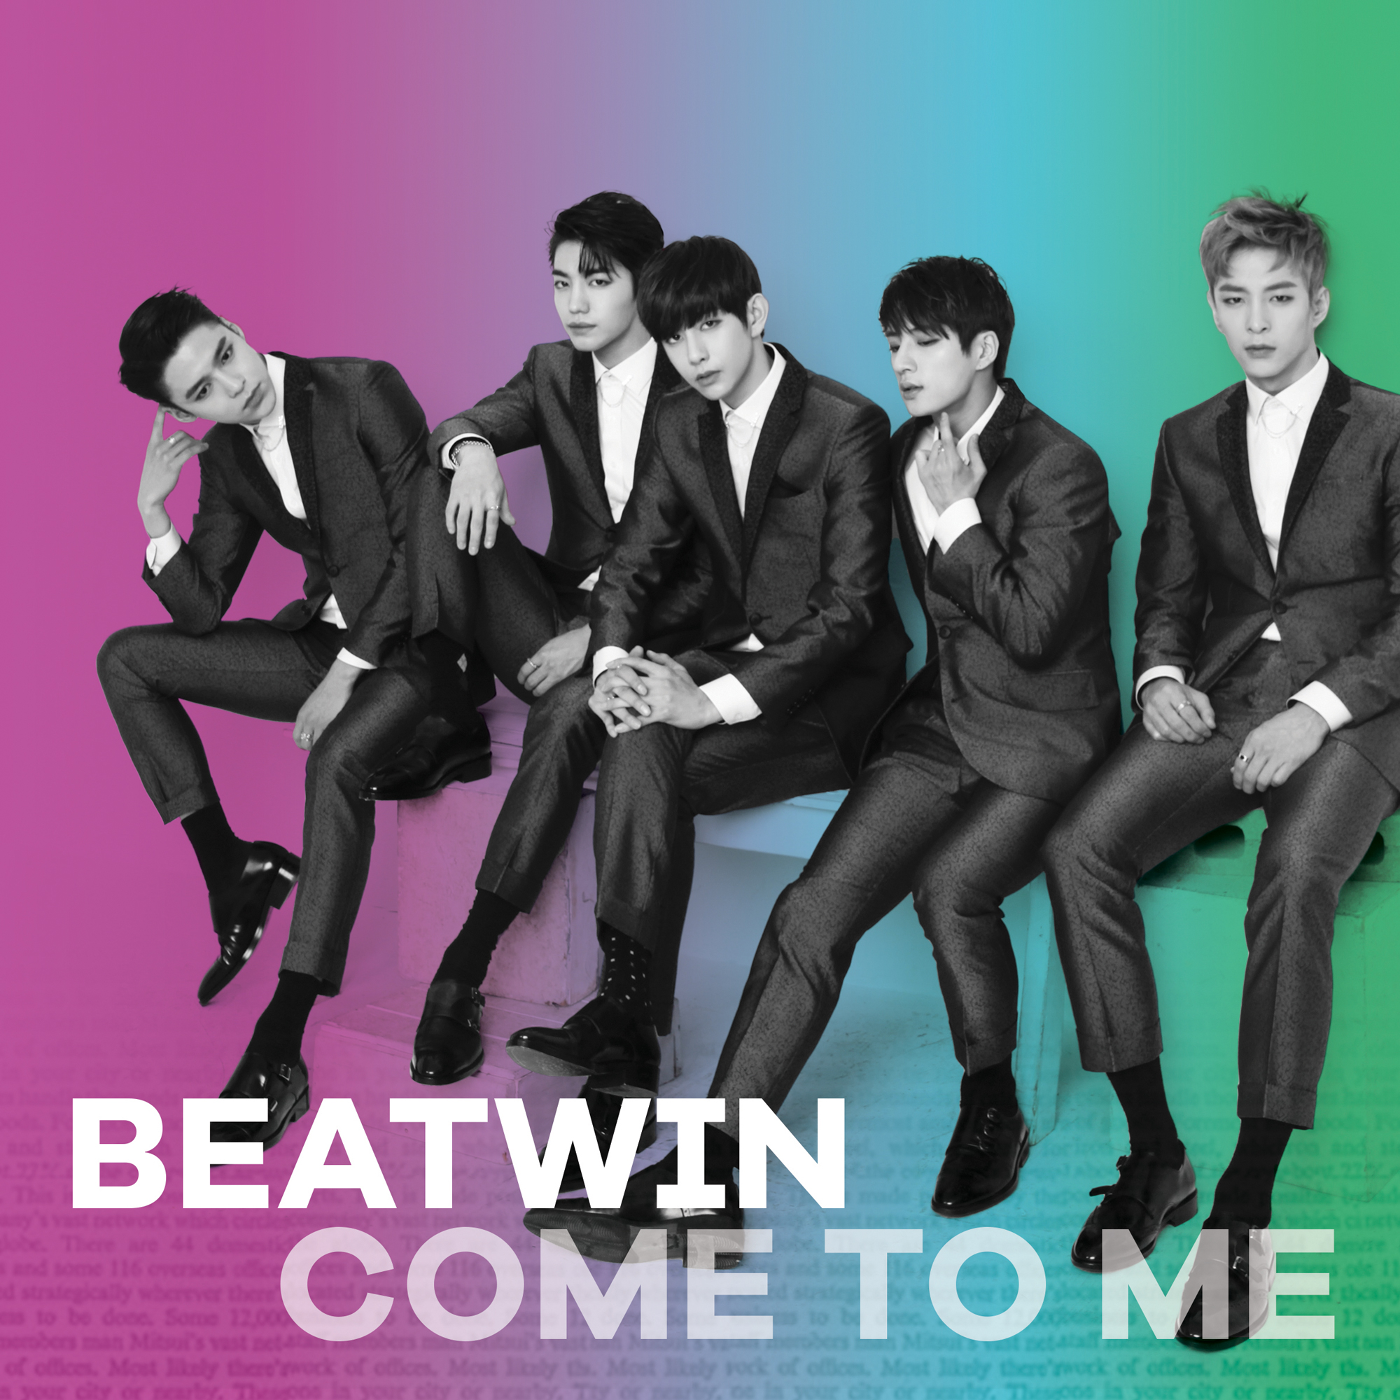 Come To Me (BEATWIN)